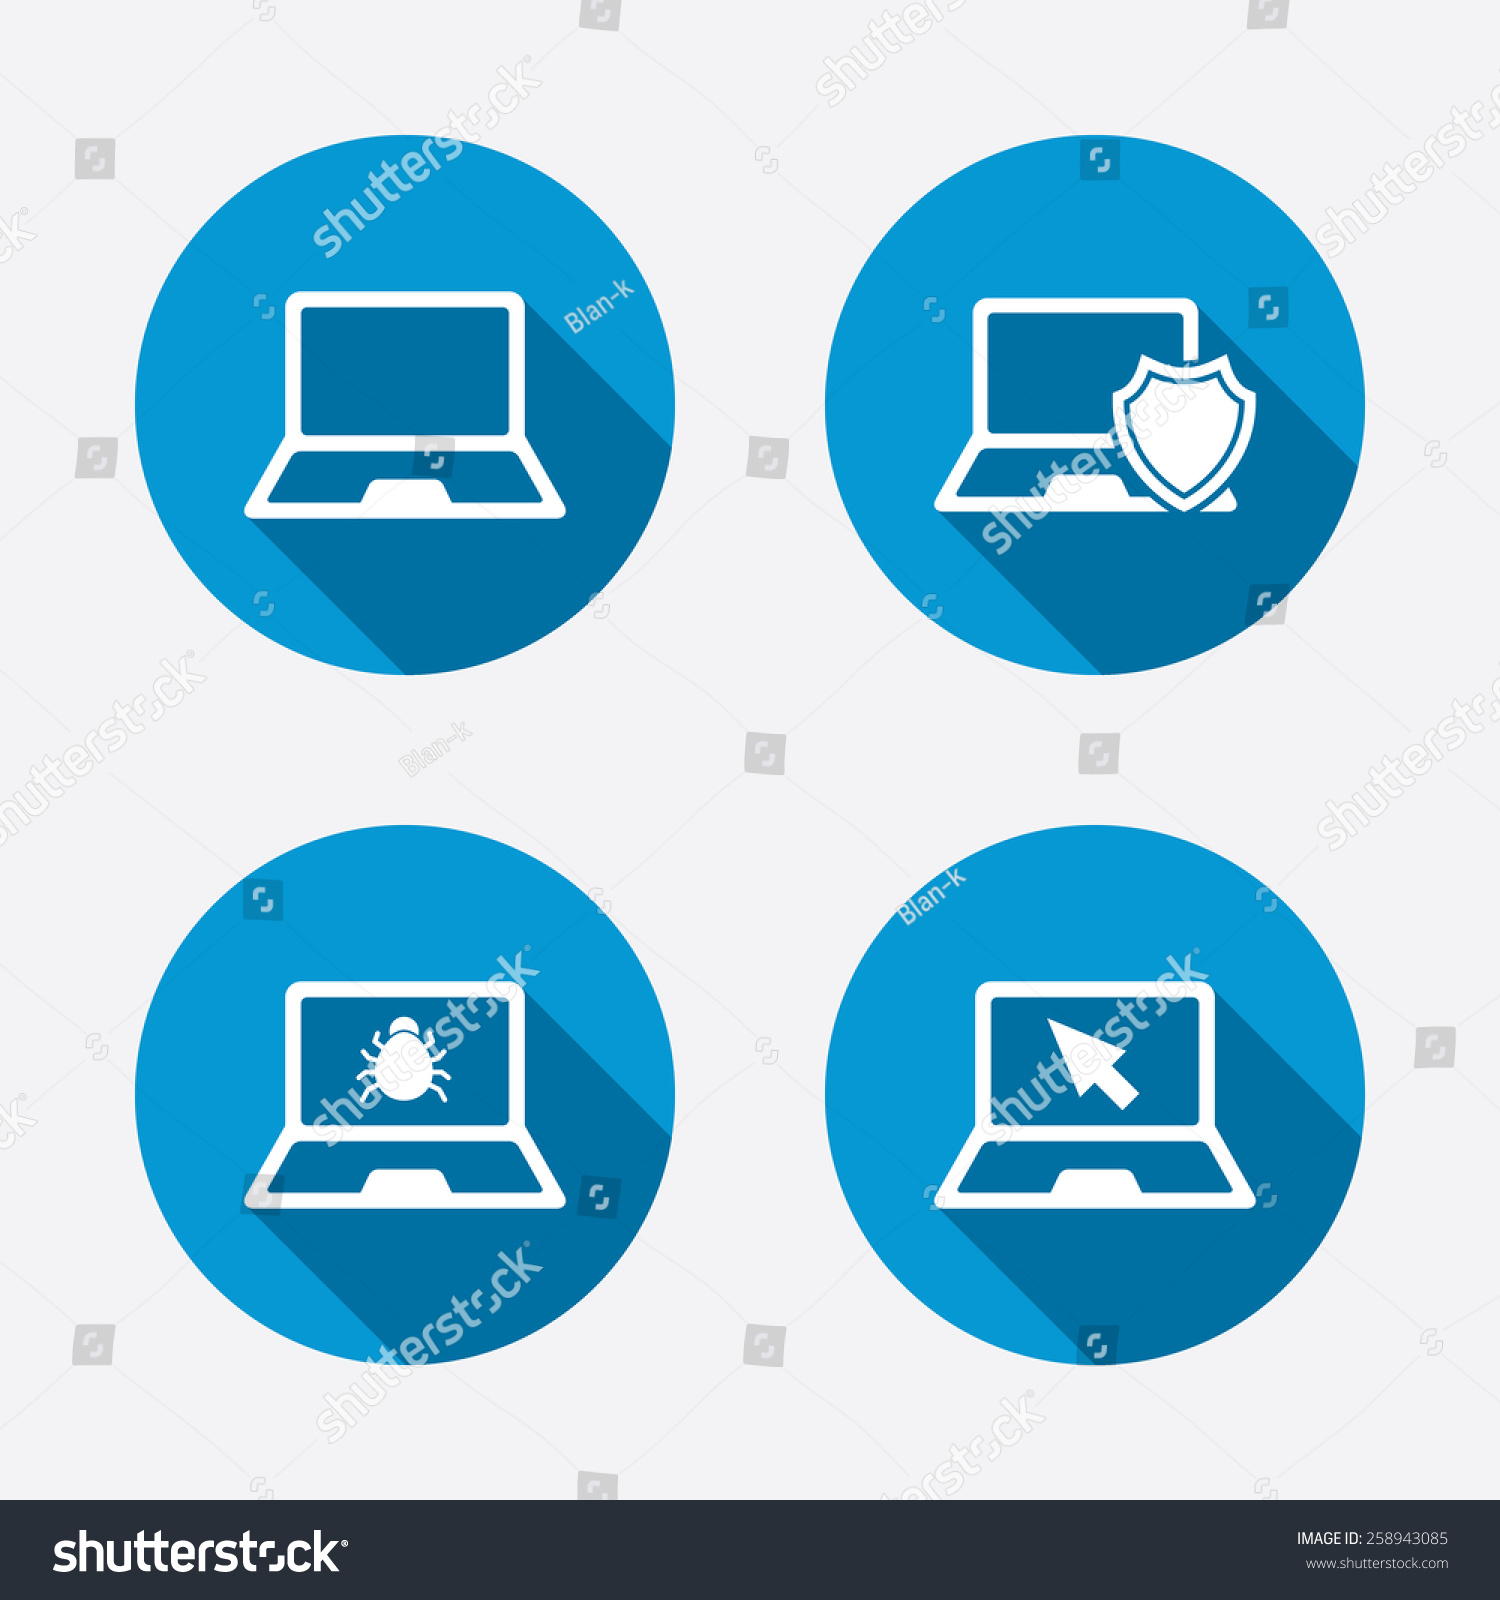 Image gallery software symbols Vector image software